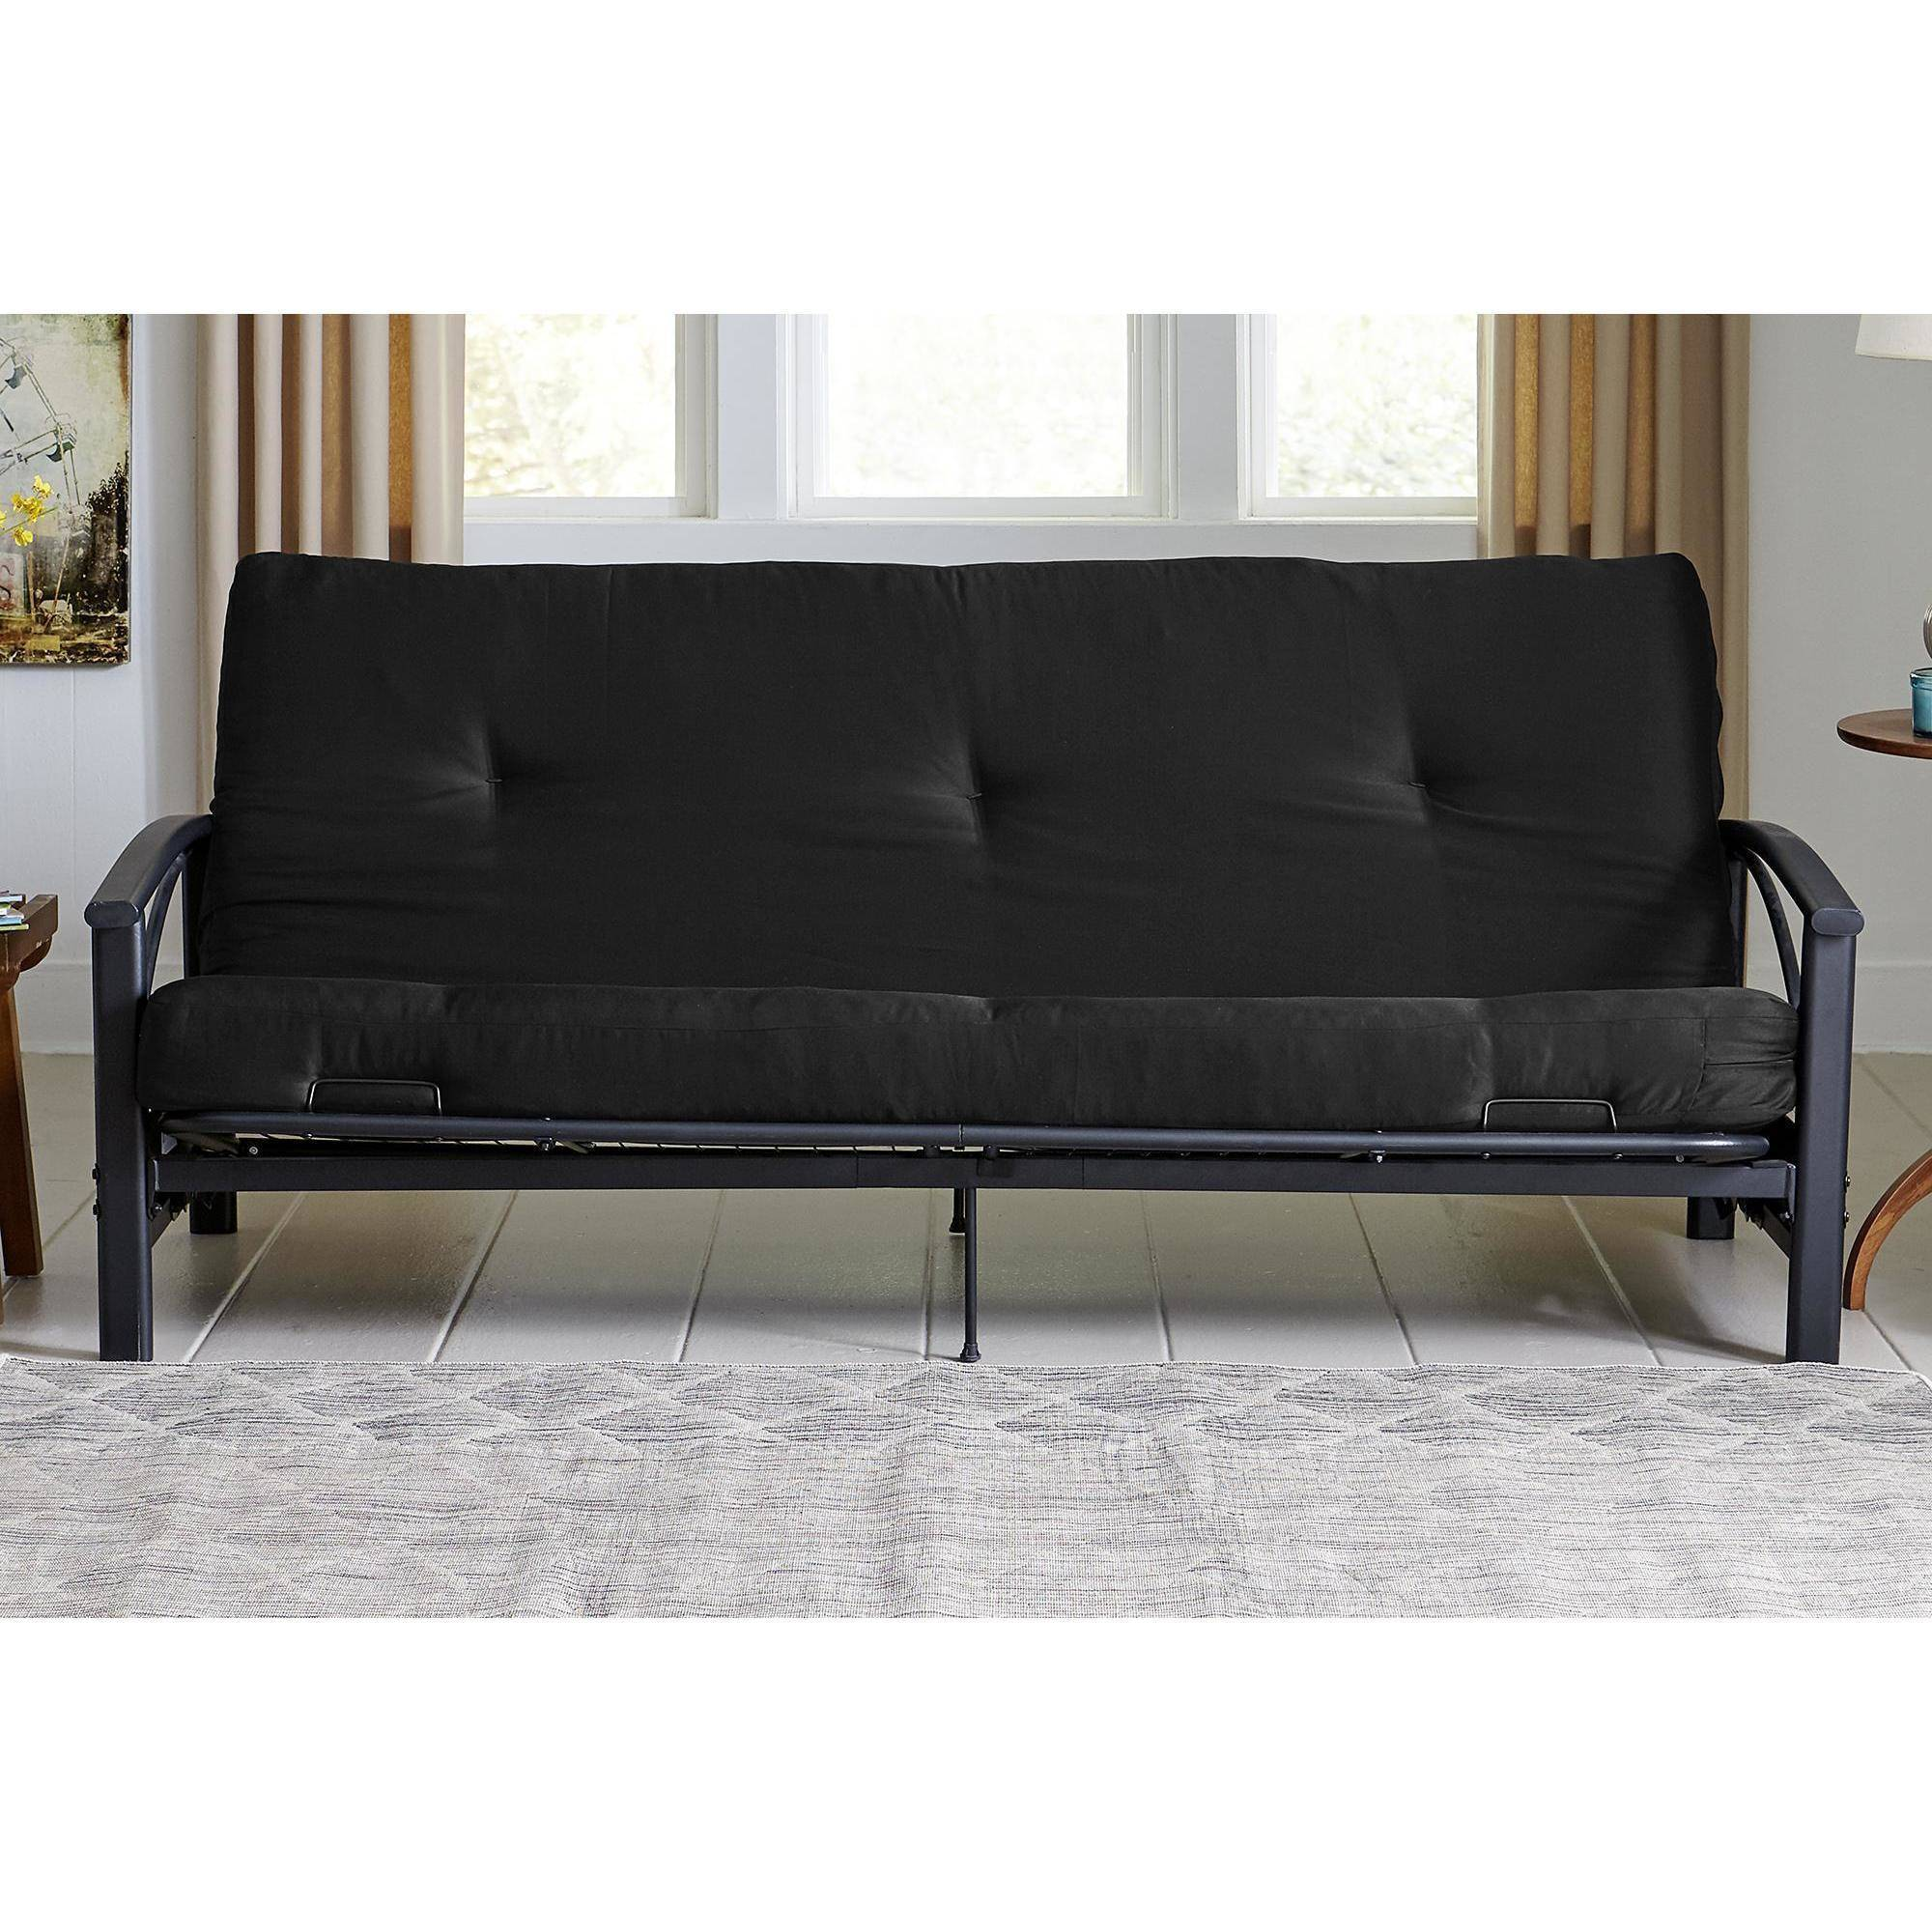 6 Full Size Futon Mattress Multiple